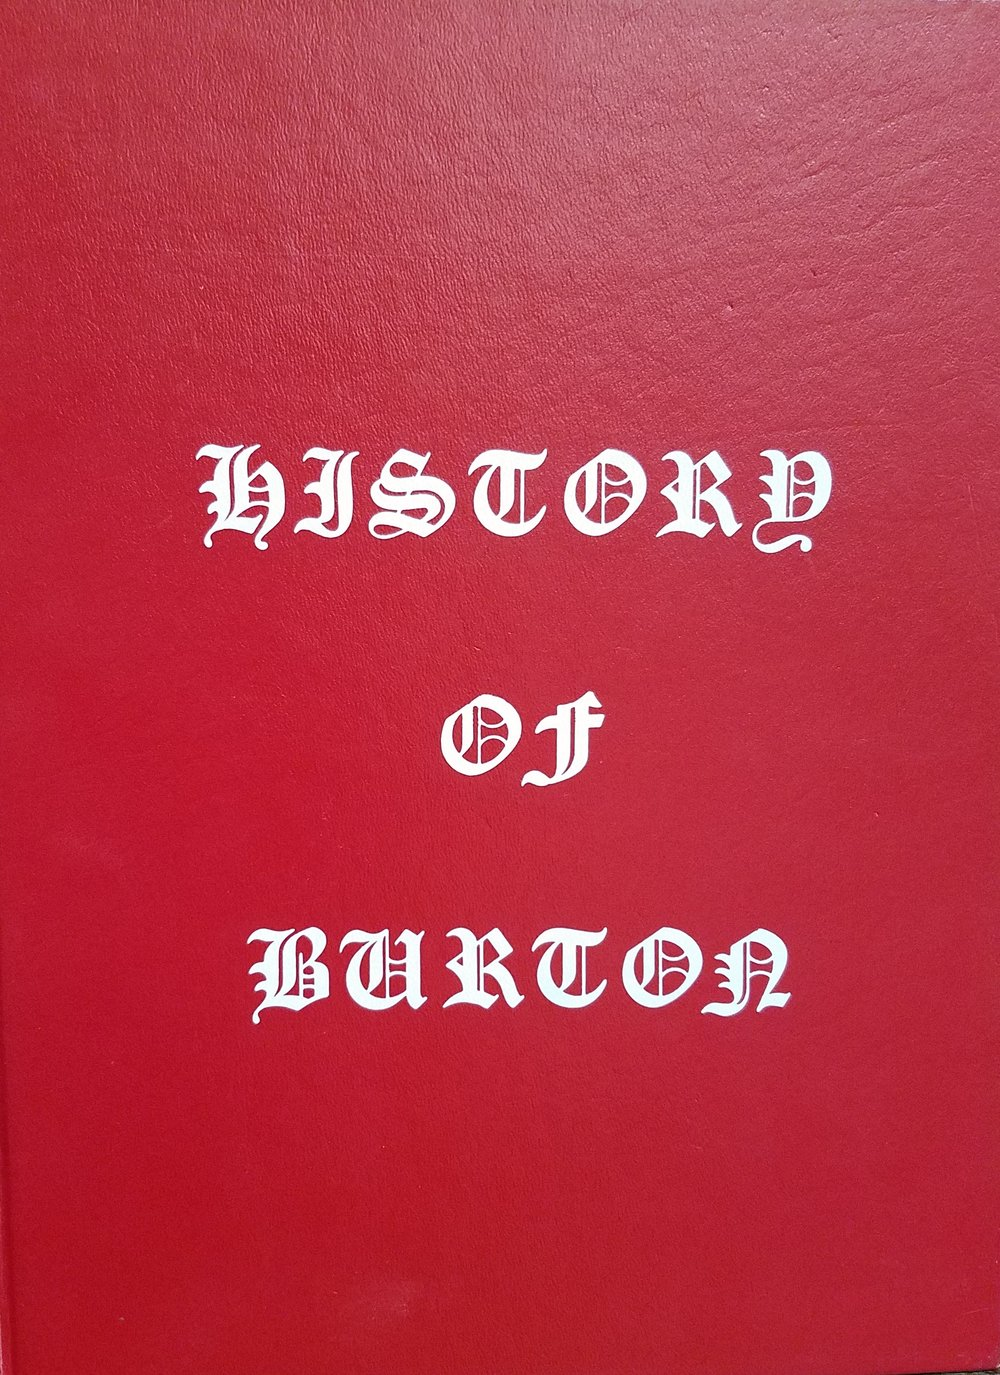 - Burton history and Annie Maud AvisThe best source of information on Burton history are the two volumes of the